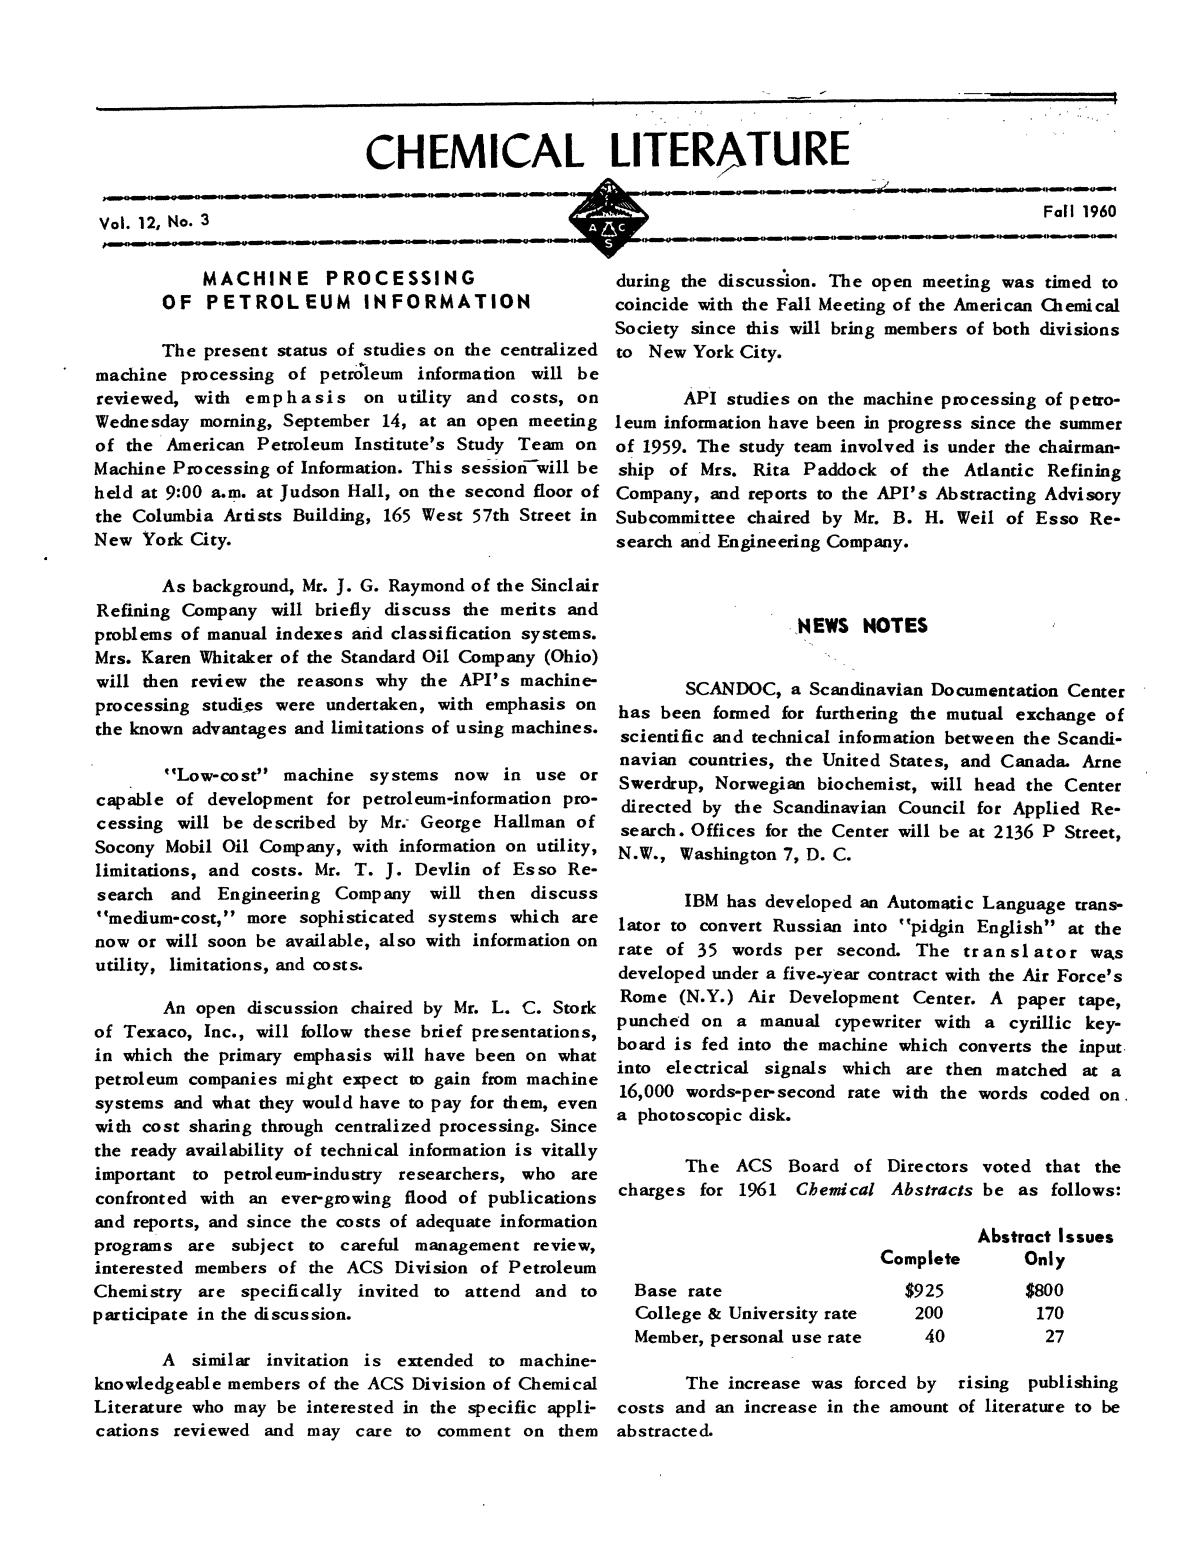 Chemical Literature, Volume 12, Number 3, Fall 1960                                                                                                      1